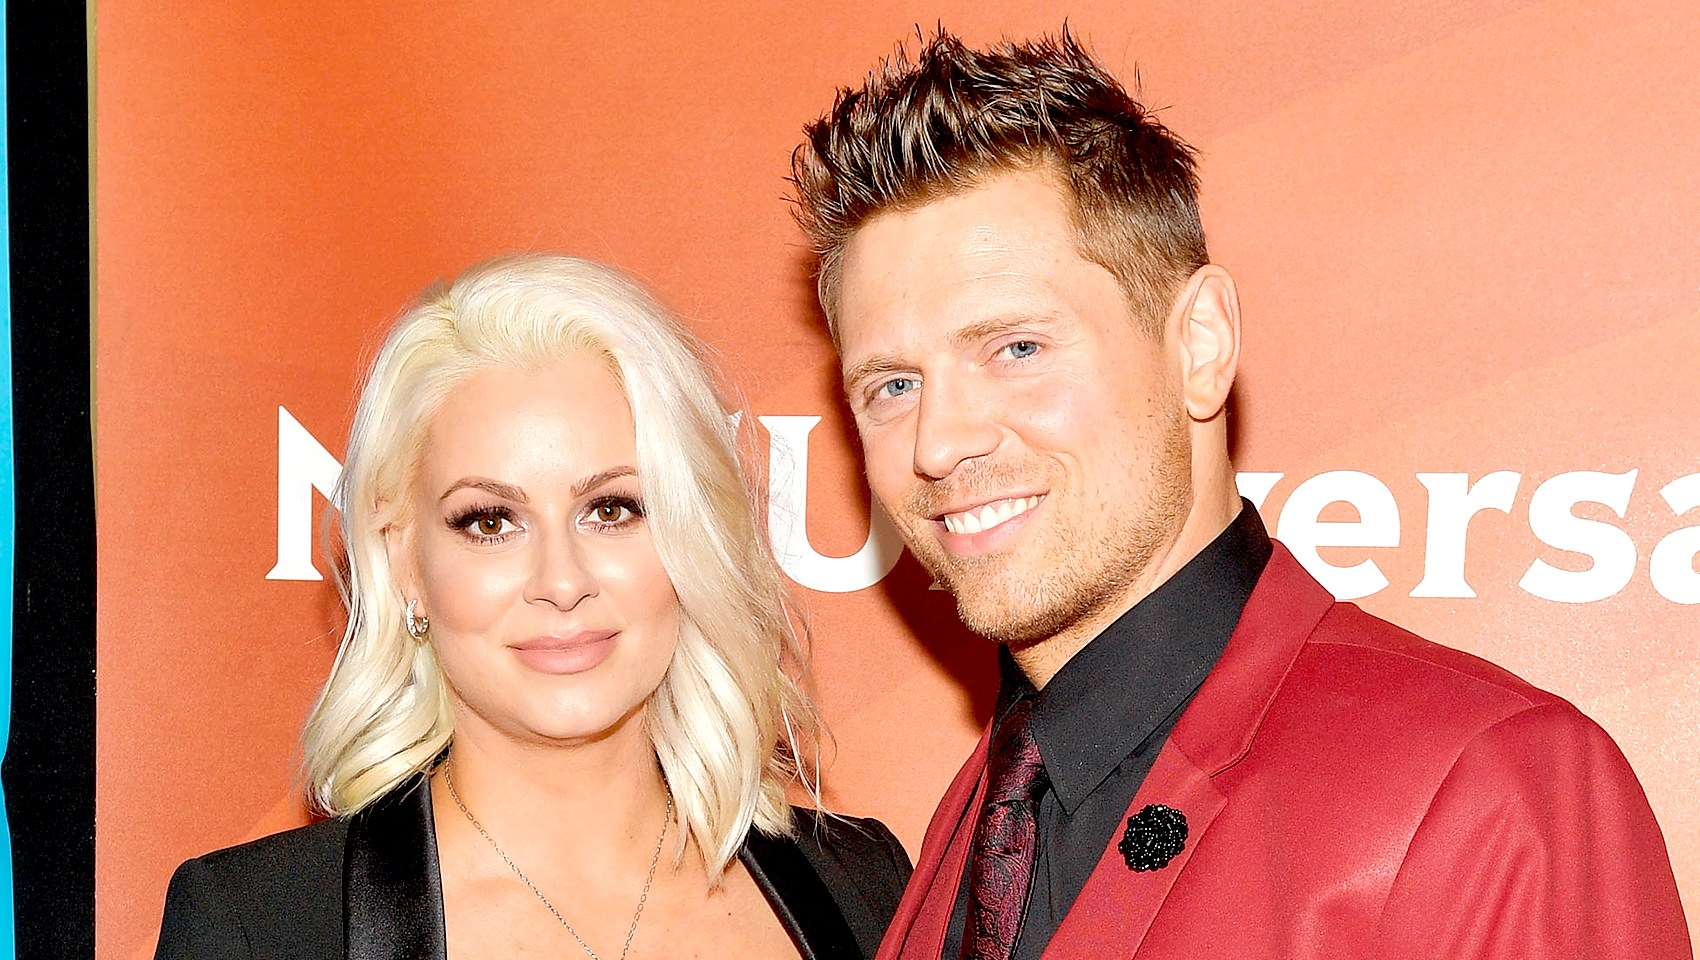 Maryse-Ouellet-and-The-Miz